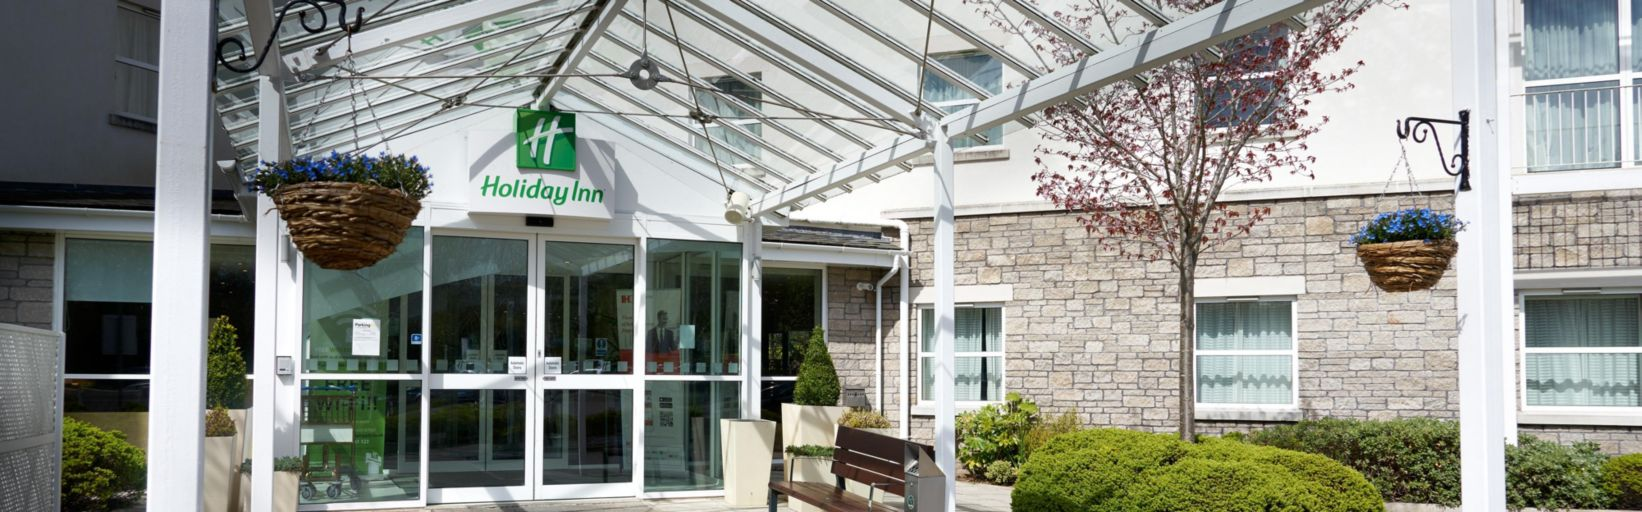 Welcome To Holiday Inn Bristol Airport